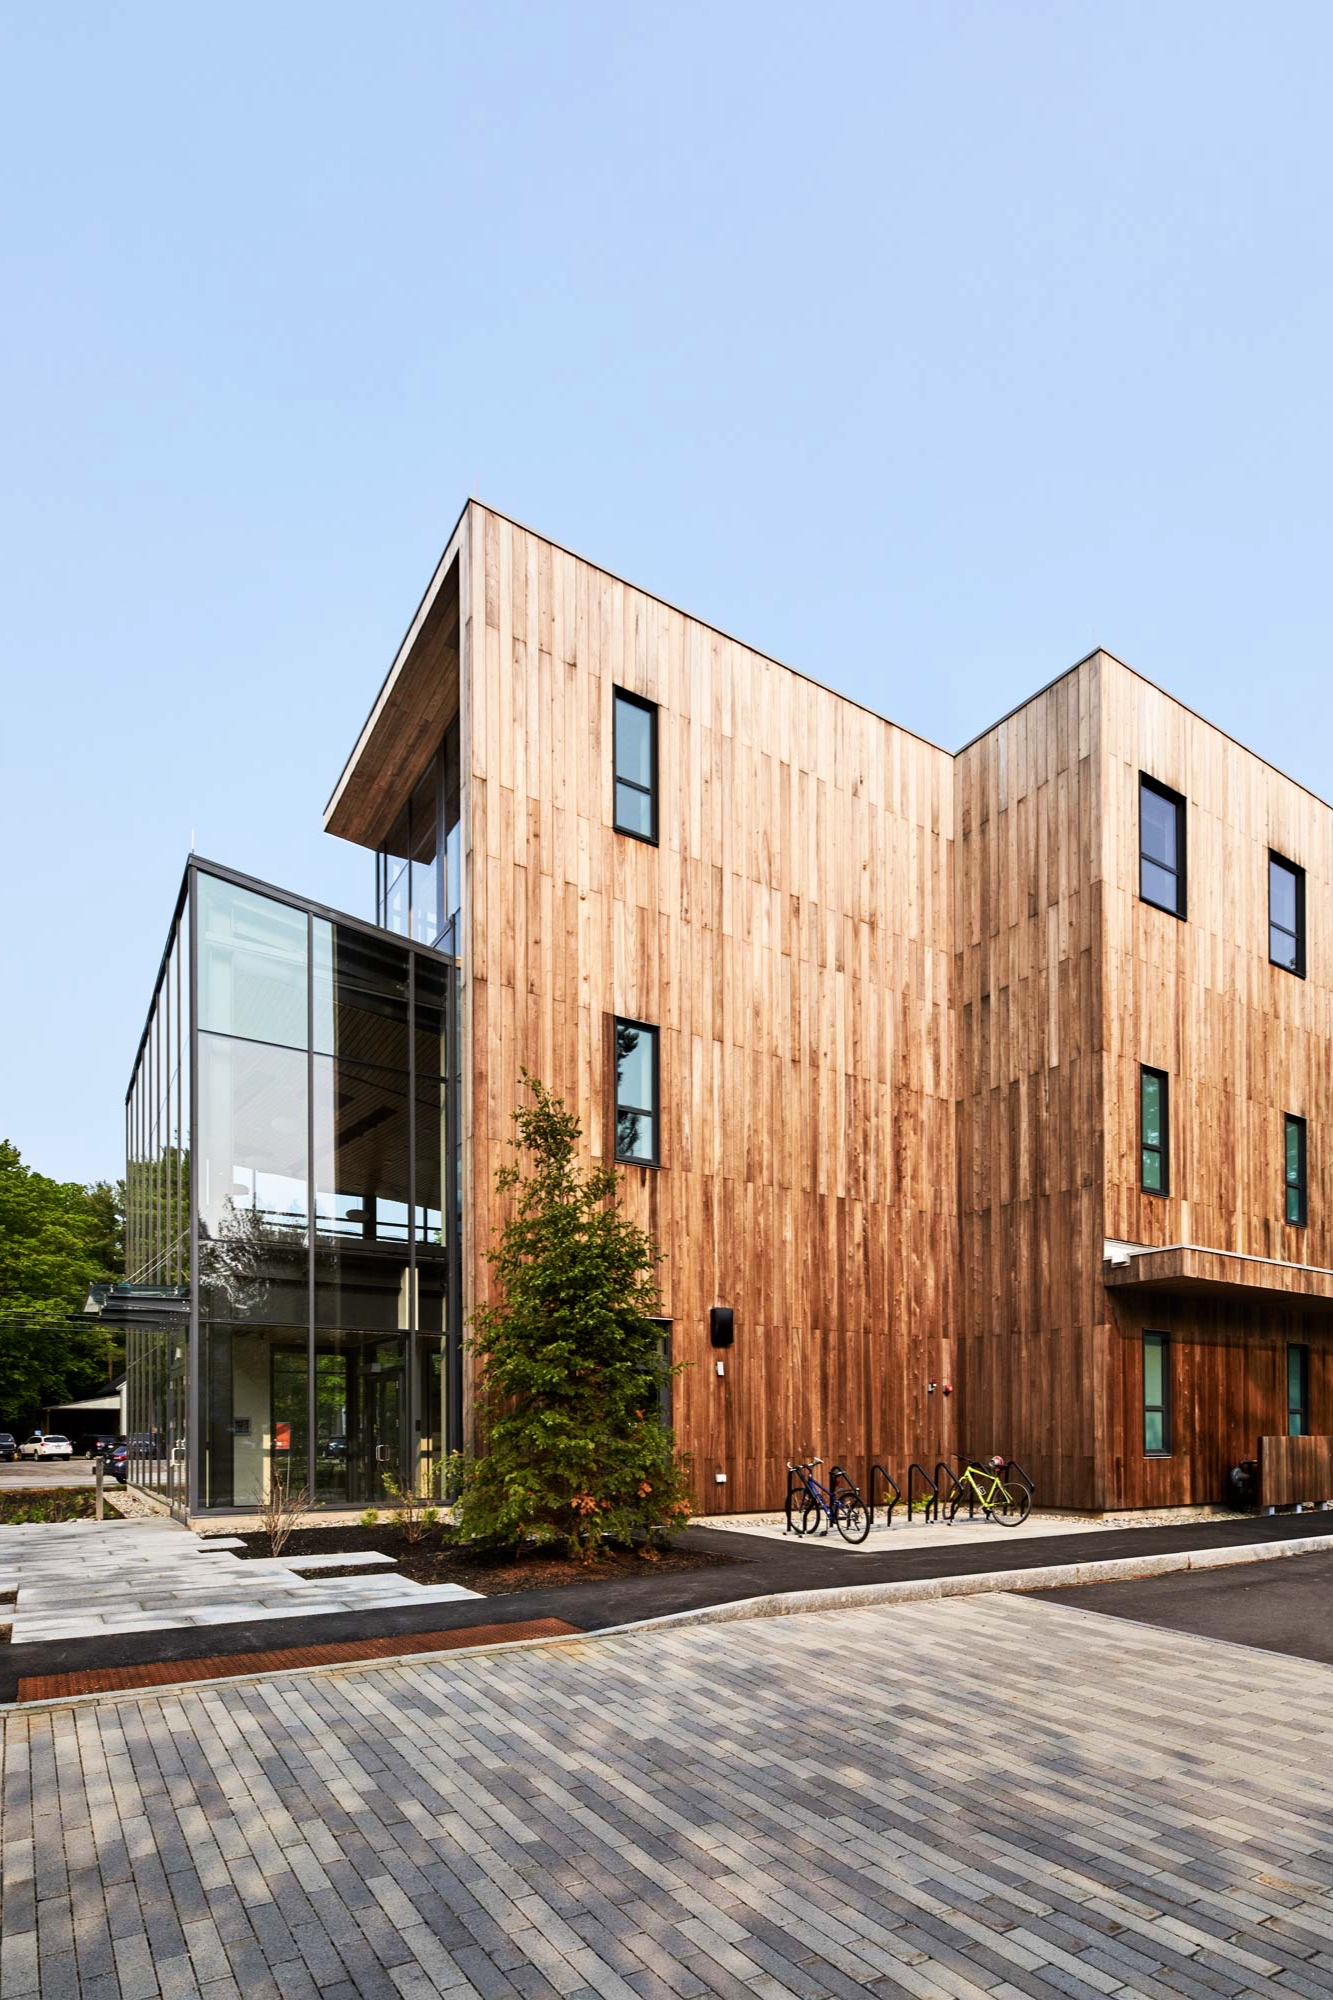 The exterior of the building is clad in a thermally treated poplar called Cambia that was sourced in Virginia and processed in New Hampshire. The wood will resist rot and will silver over time.